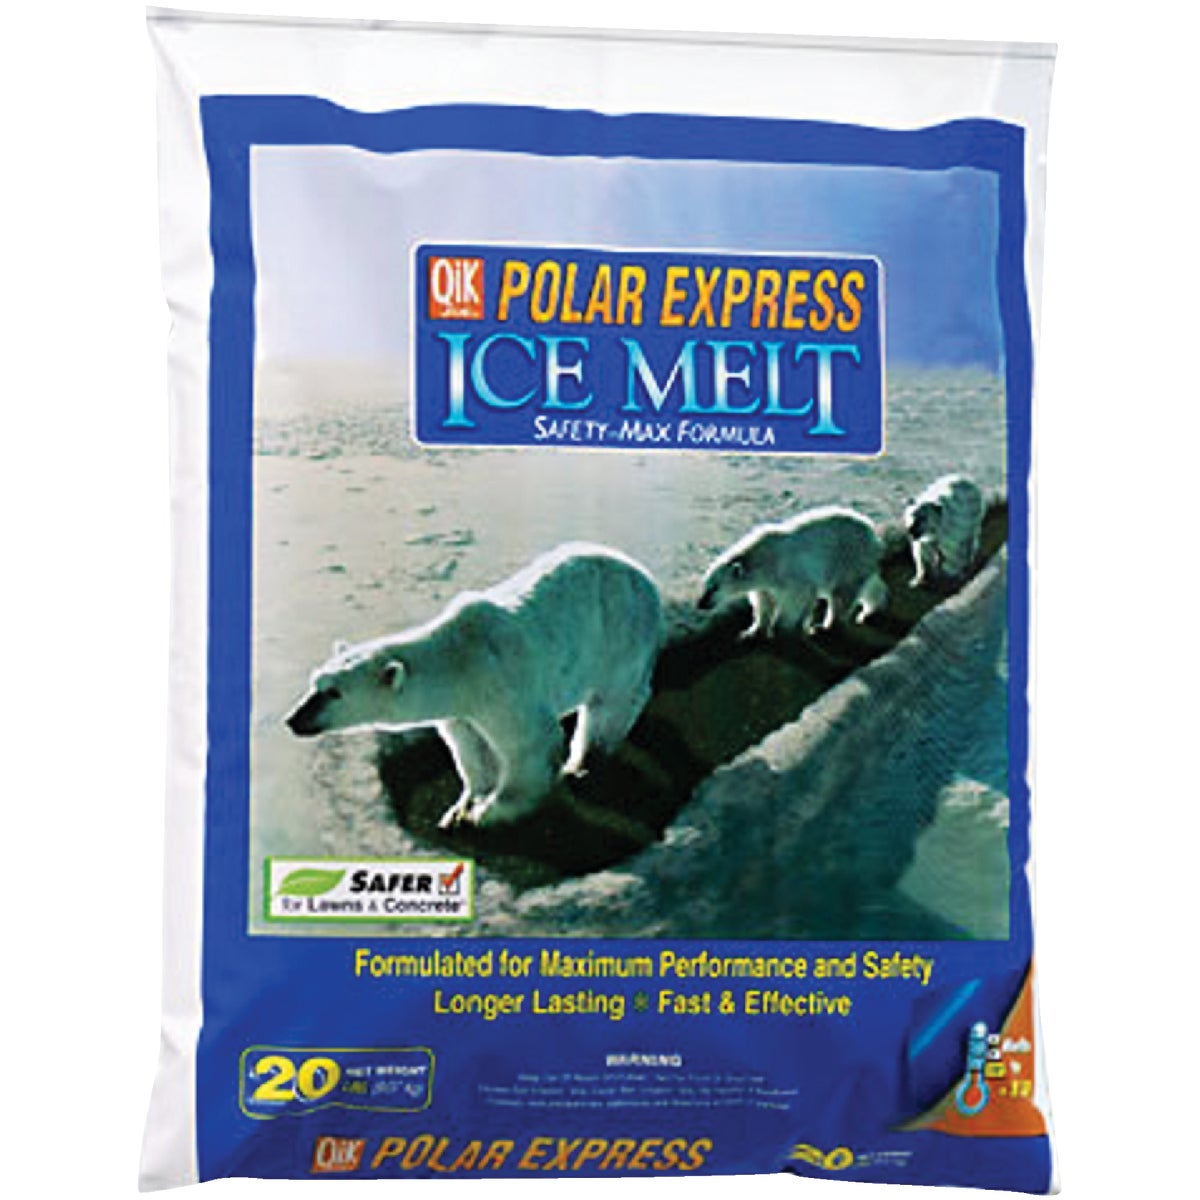 20# POL EXPRESS ICE MELT - 81020 by MILAZZO INDUSTRIES